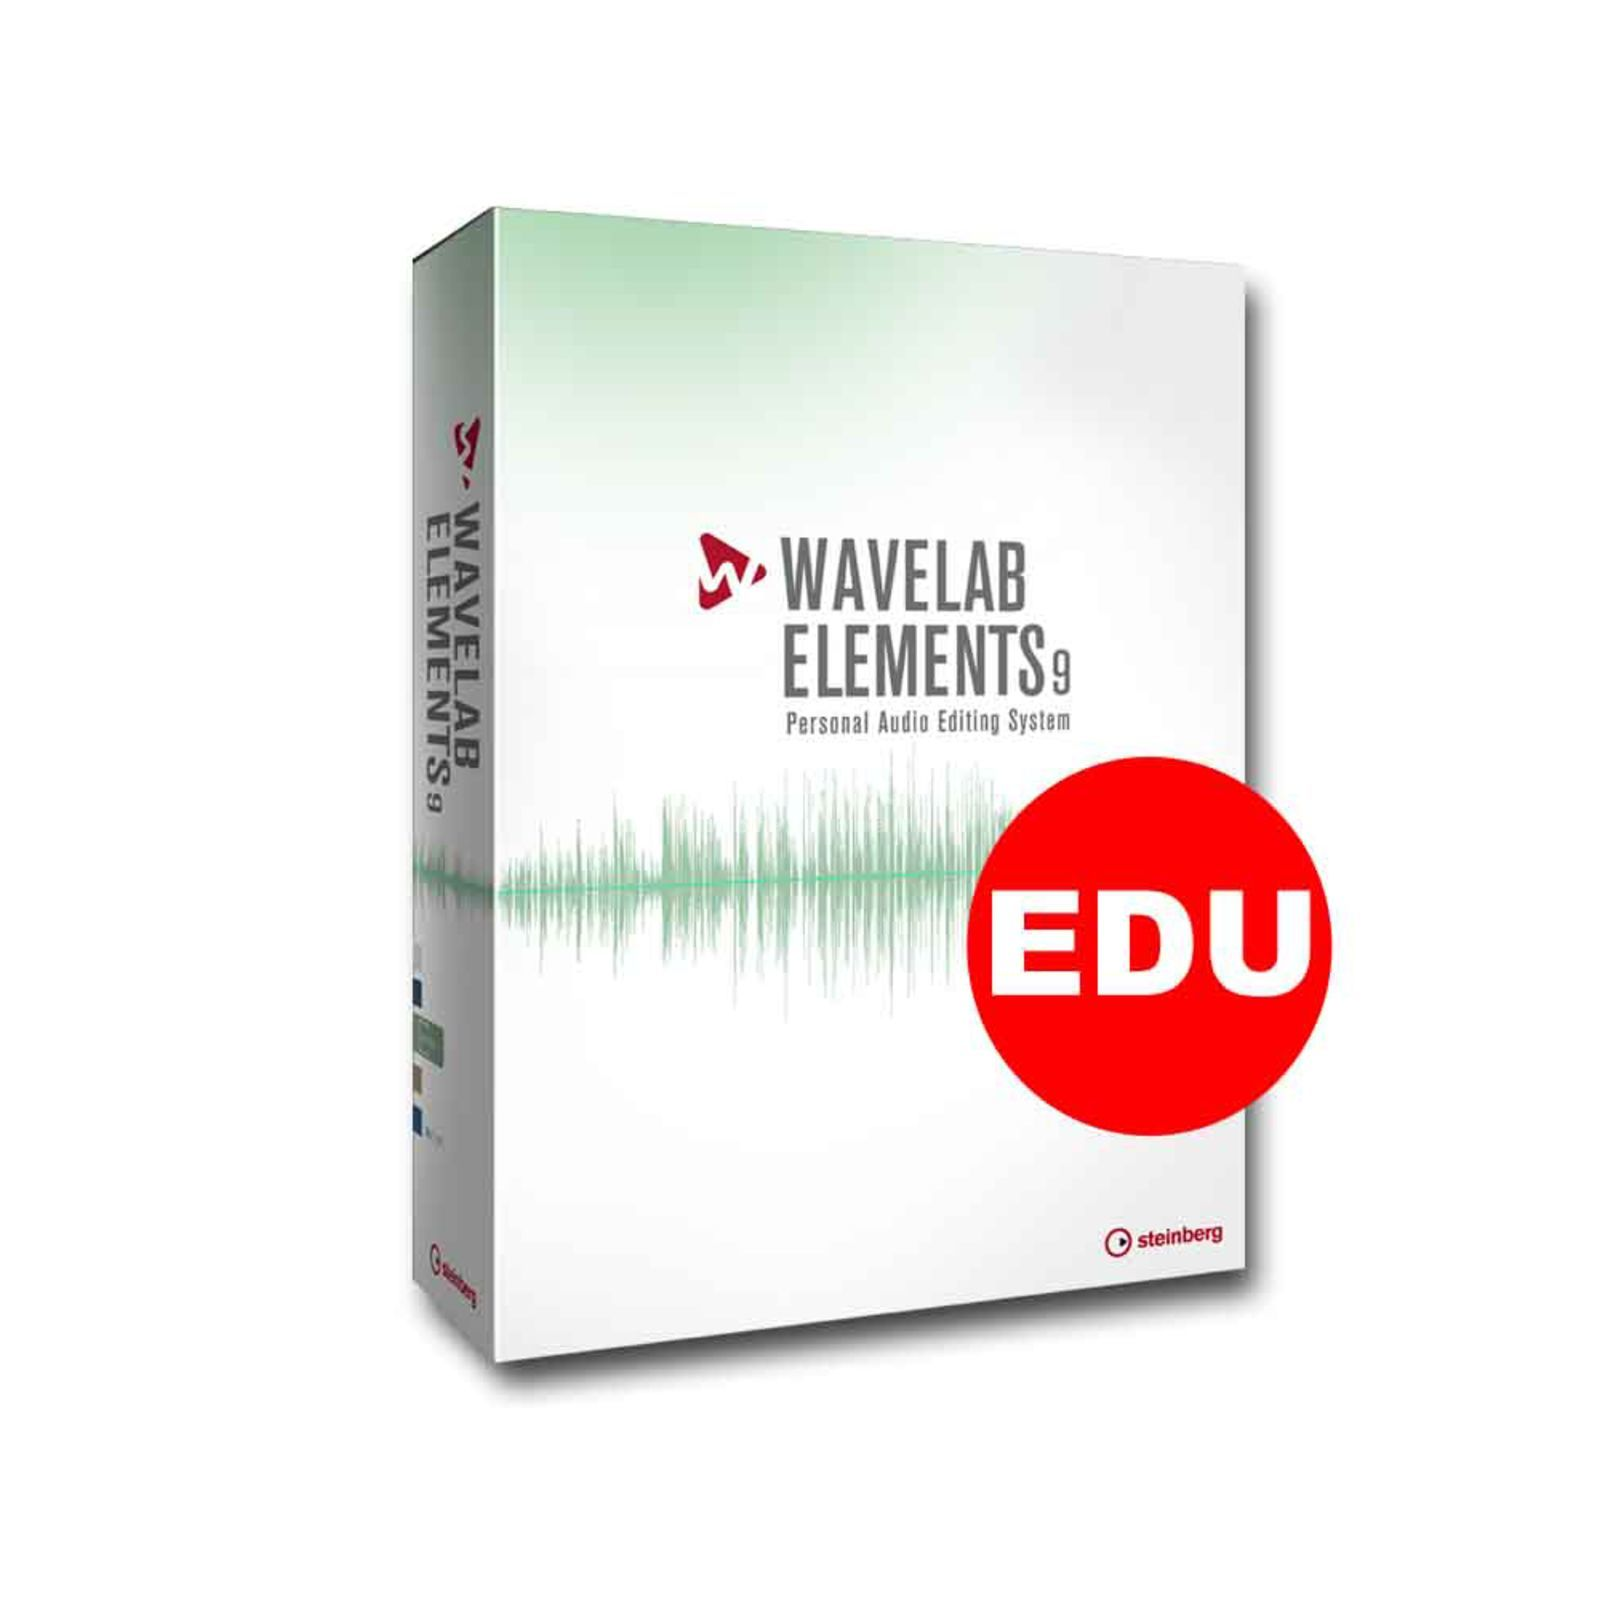 Steinberg Wavelab Elements 9 EDU Produktbild